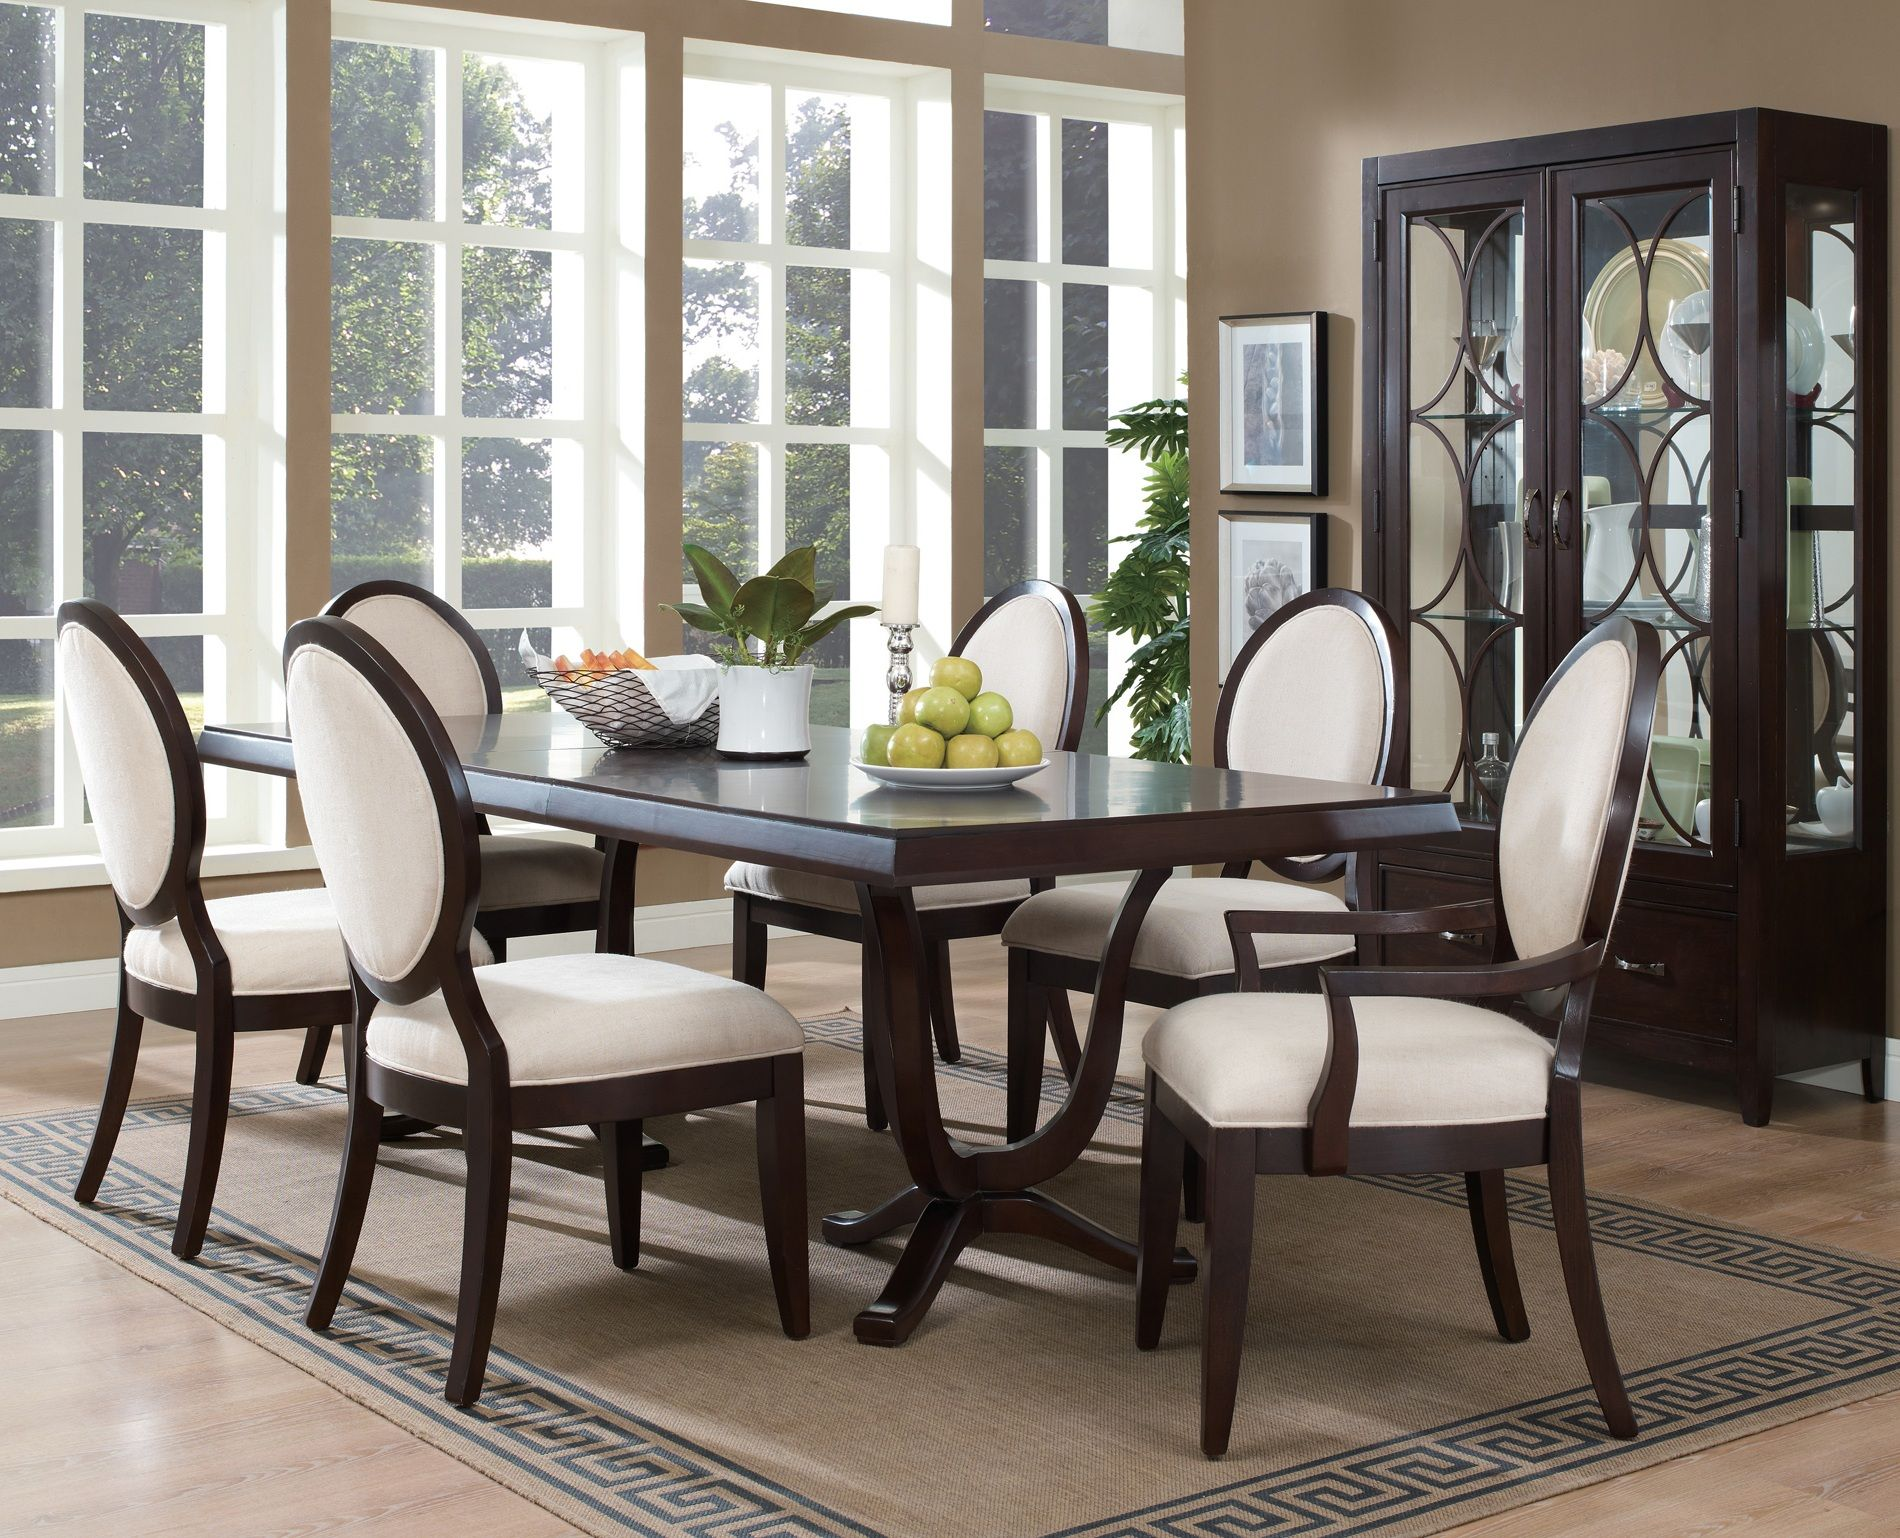 dining room table chairs set. dining room chairskitchen dining